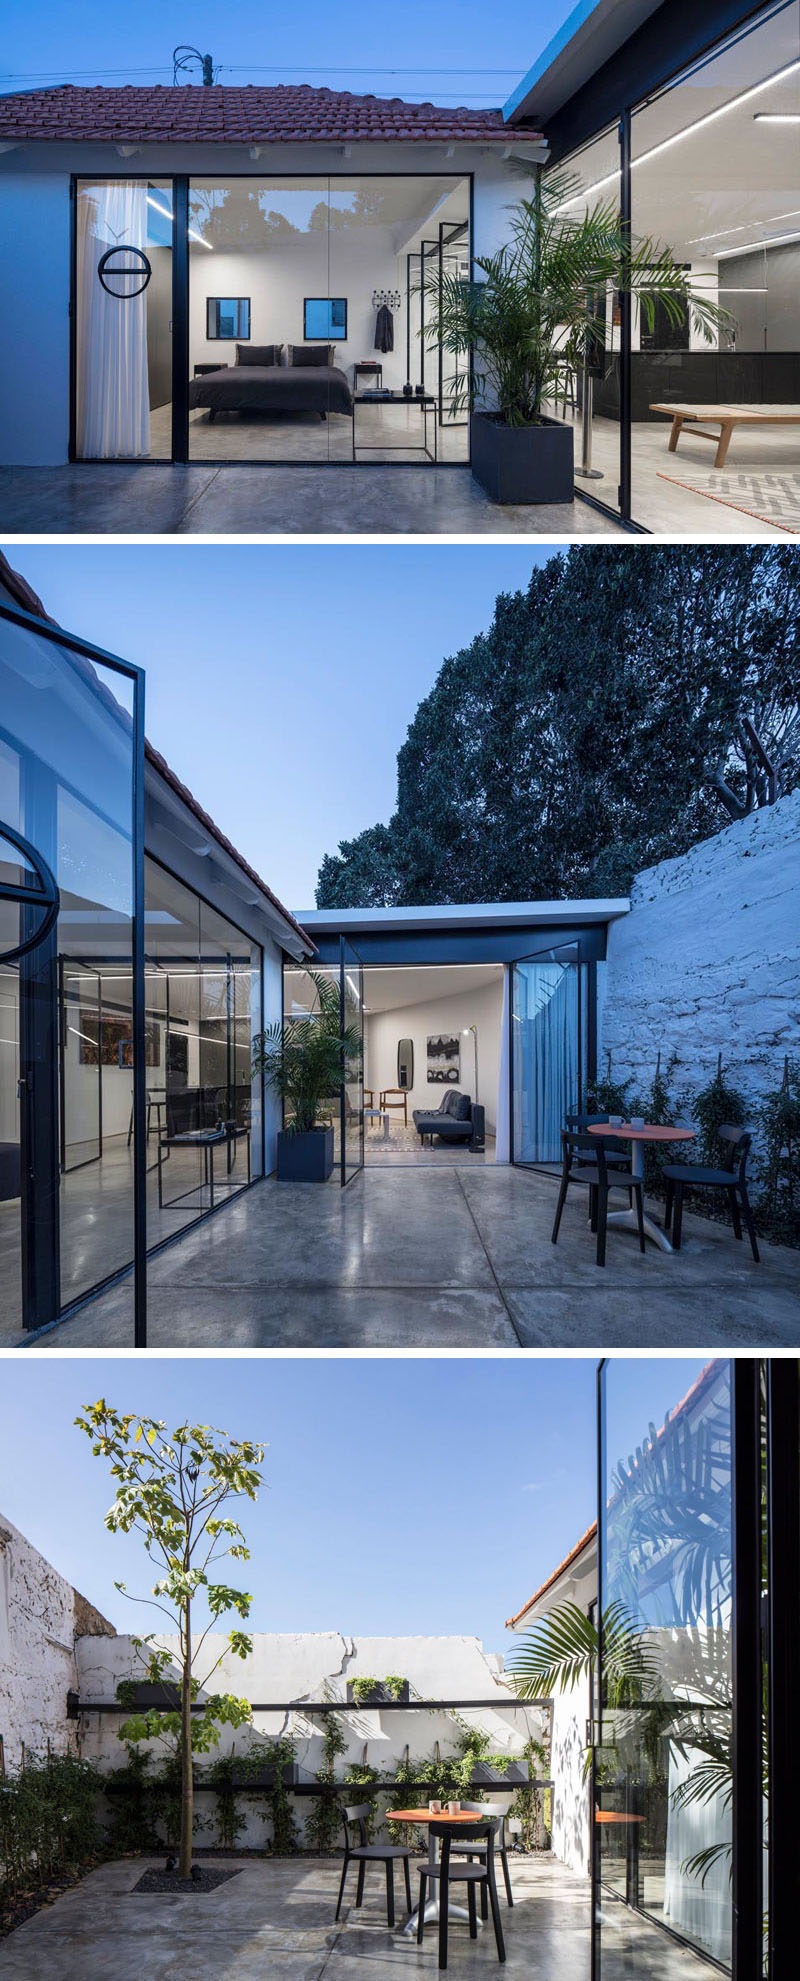 Glass pivoting doors open the modern interior of this small home to a private patio. #Patio #OutdoorSpace